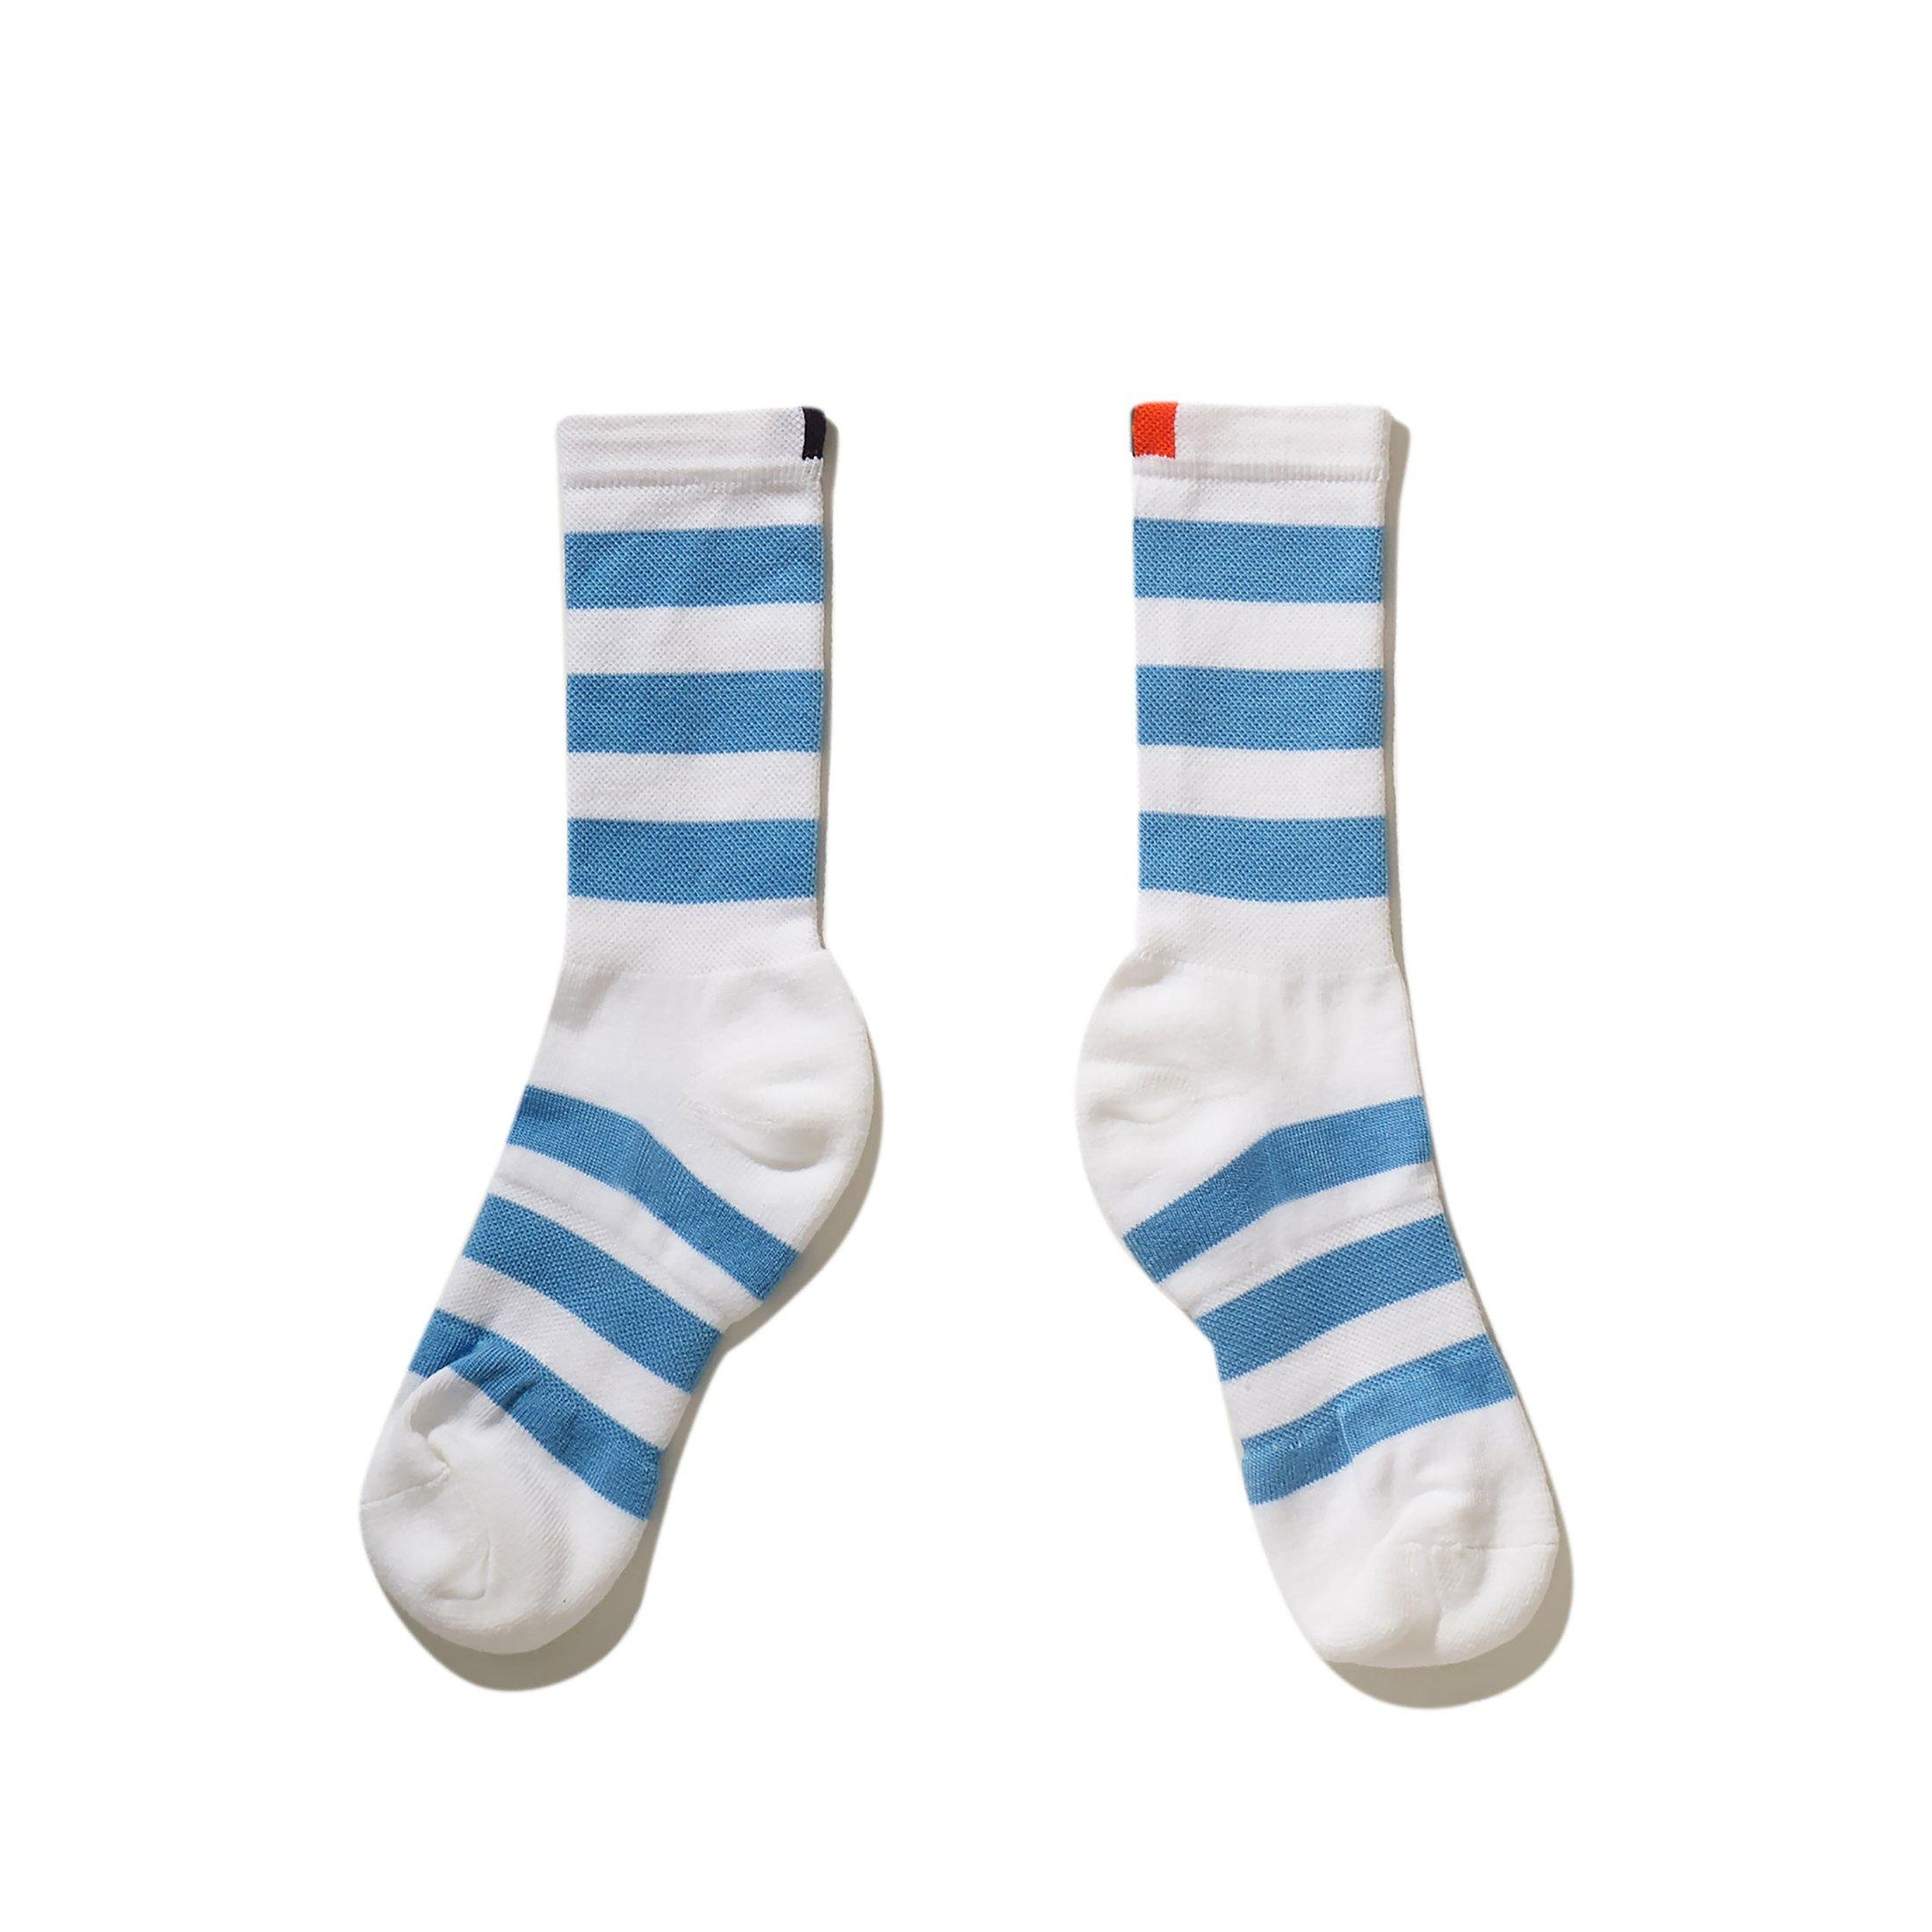 The Women's Rugby Sock - White/Blue